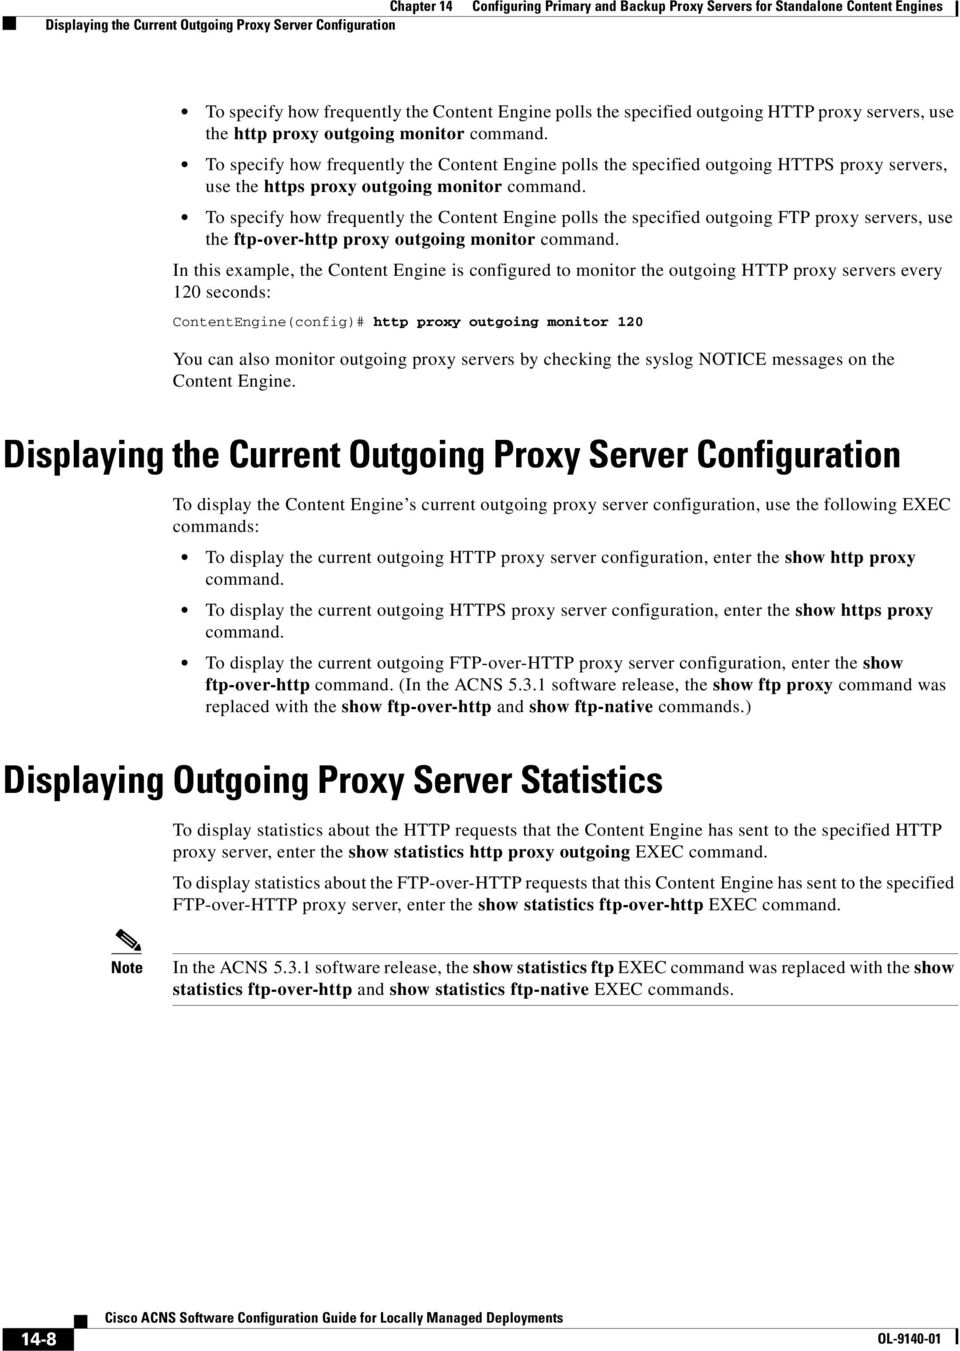 To specify how frequently the Content Engine polls the specified outgoing FTP proxy servers, use the ftp-over-http proxy outgoing monitor command.